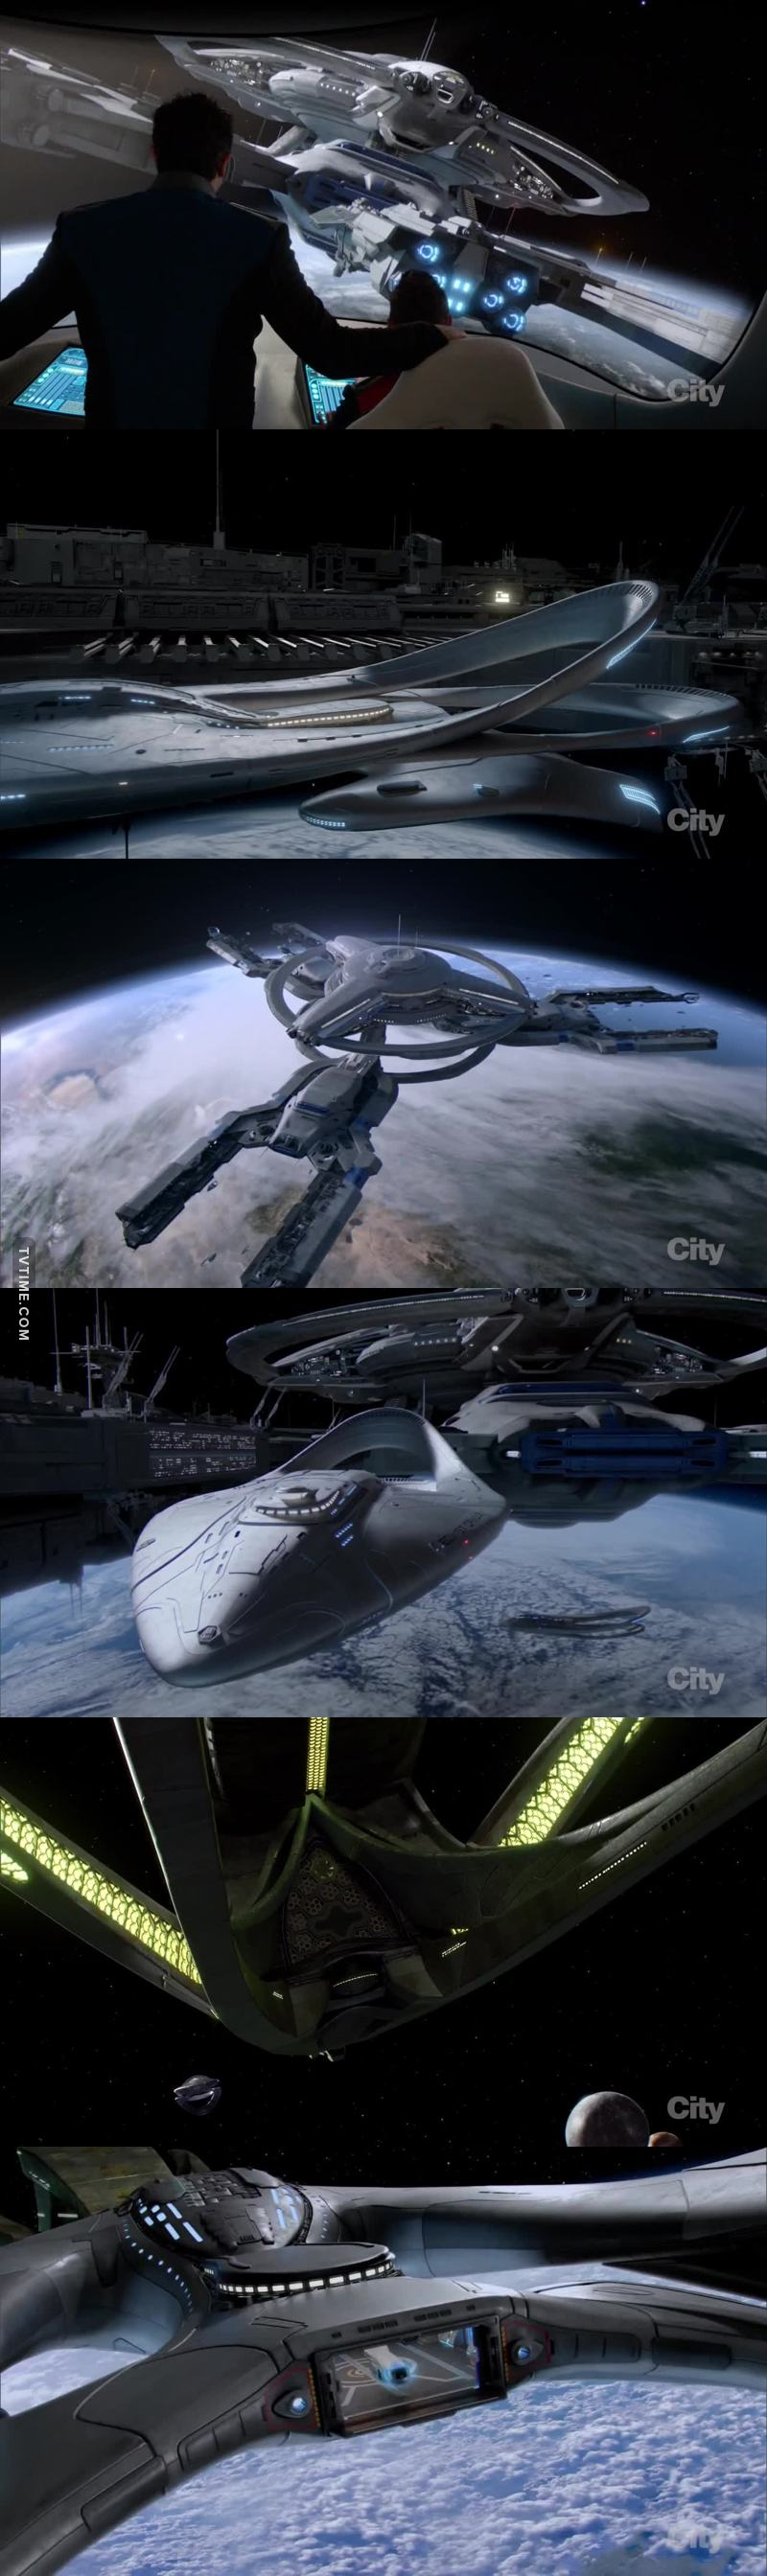 The visuals are quite stunning, I wasn't expecting that at all, and some of the ship designs are very good and memorable, credit where credit is due, props to the SFX team for some great CGI and designs.